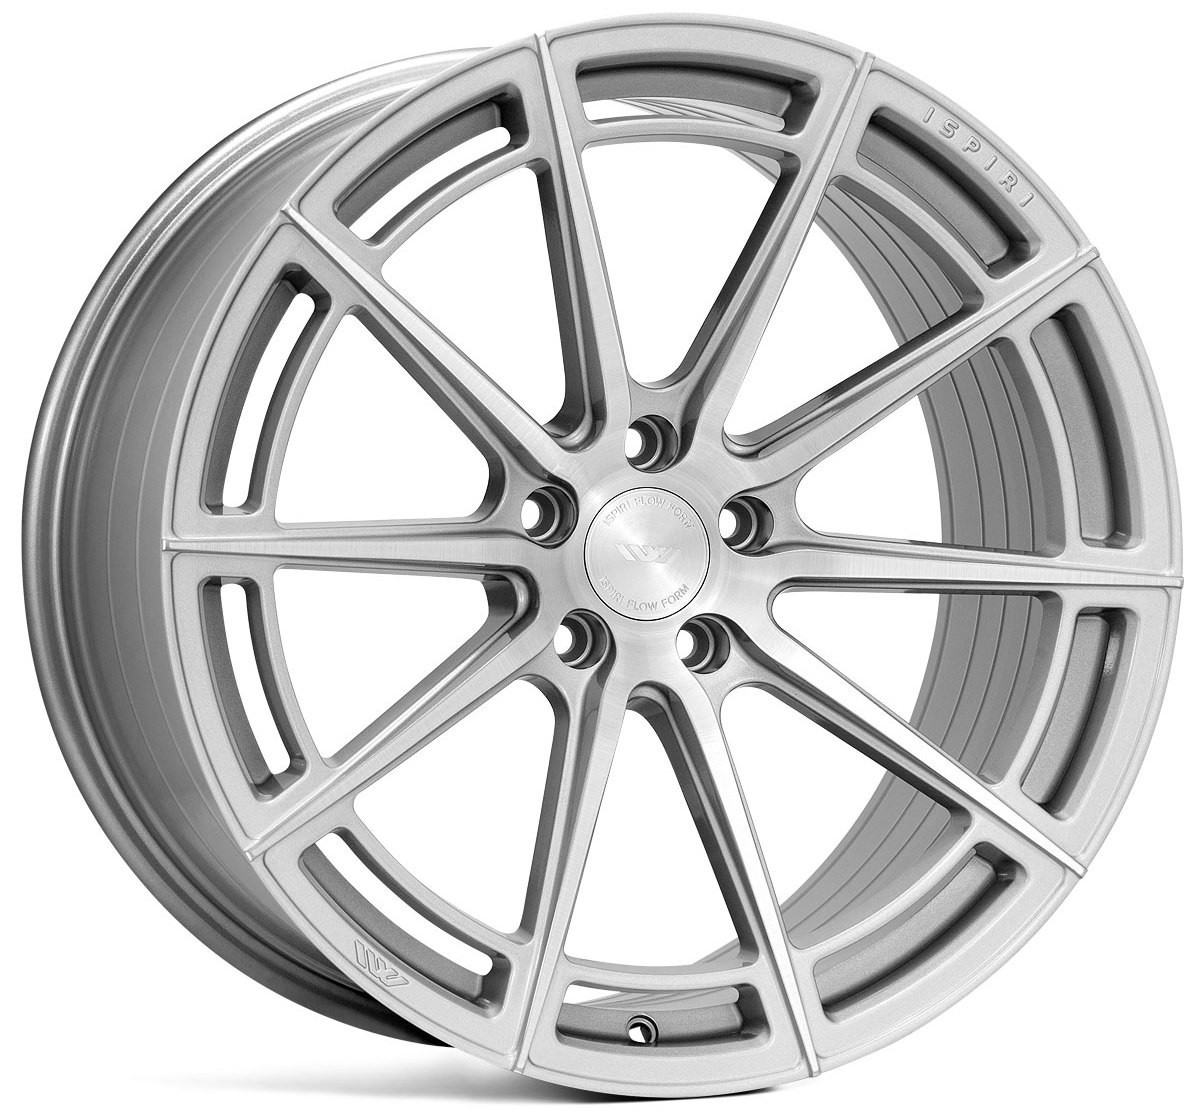 IW Automotive - FFR2 (Pure Silver Brushed)